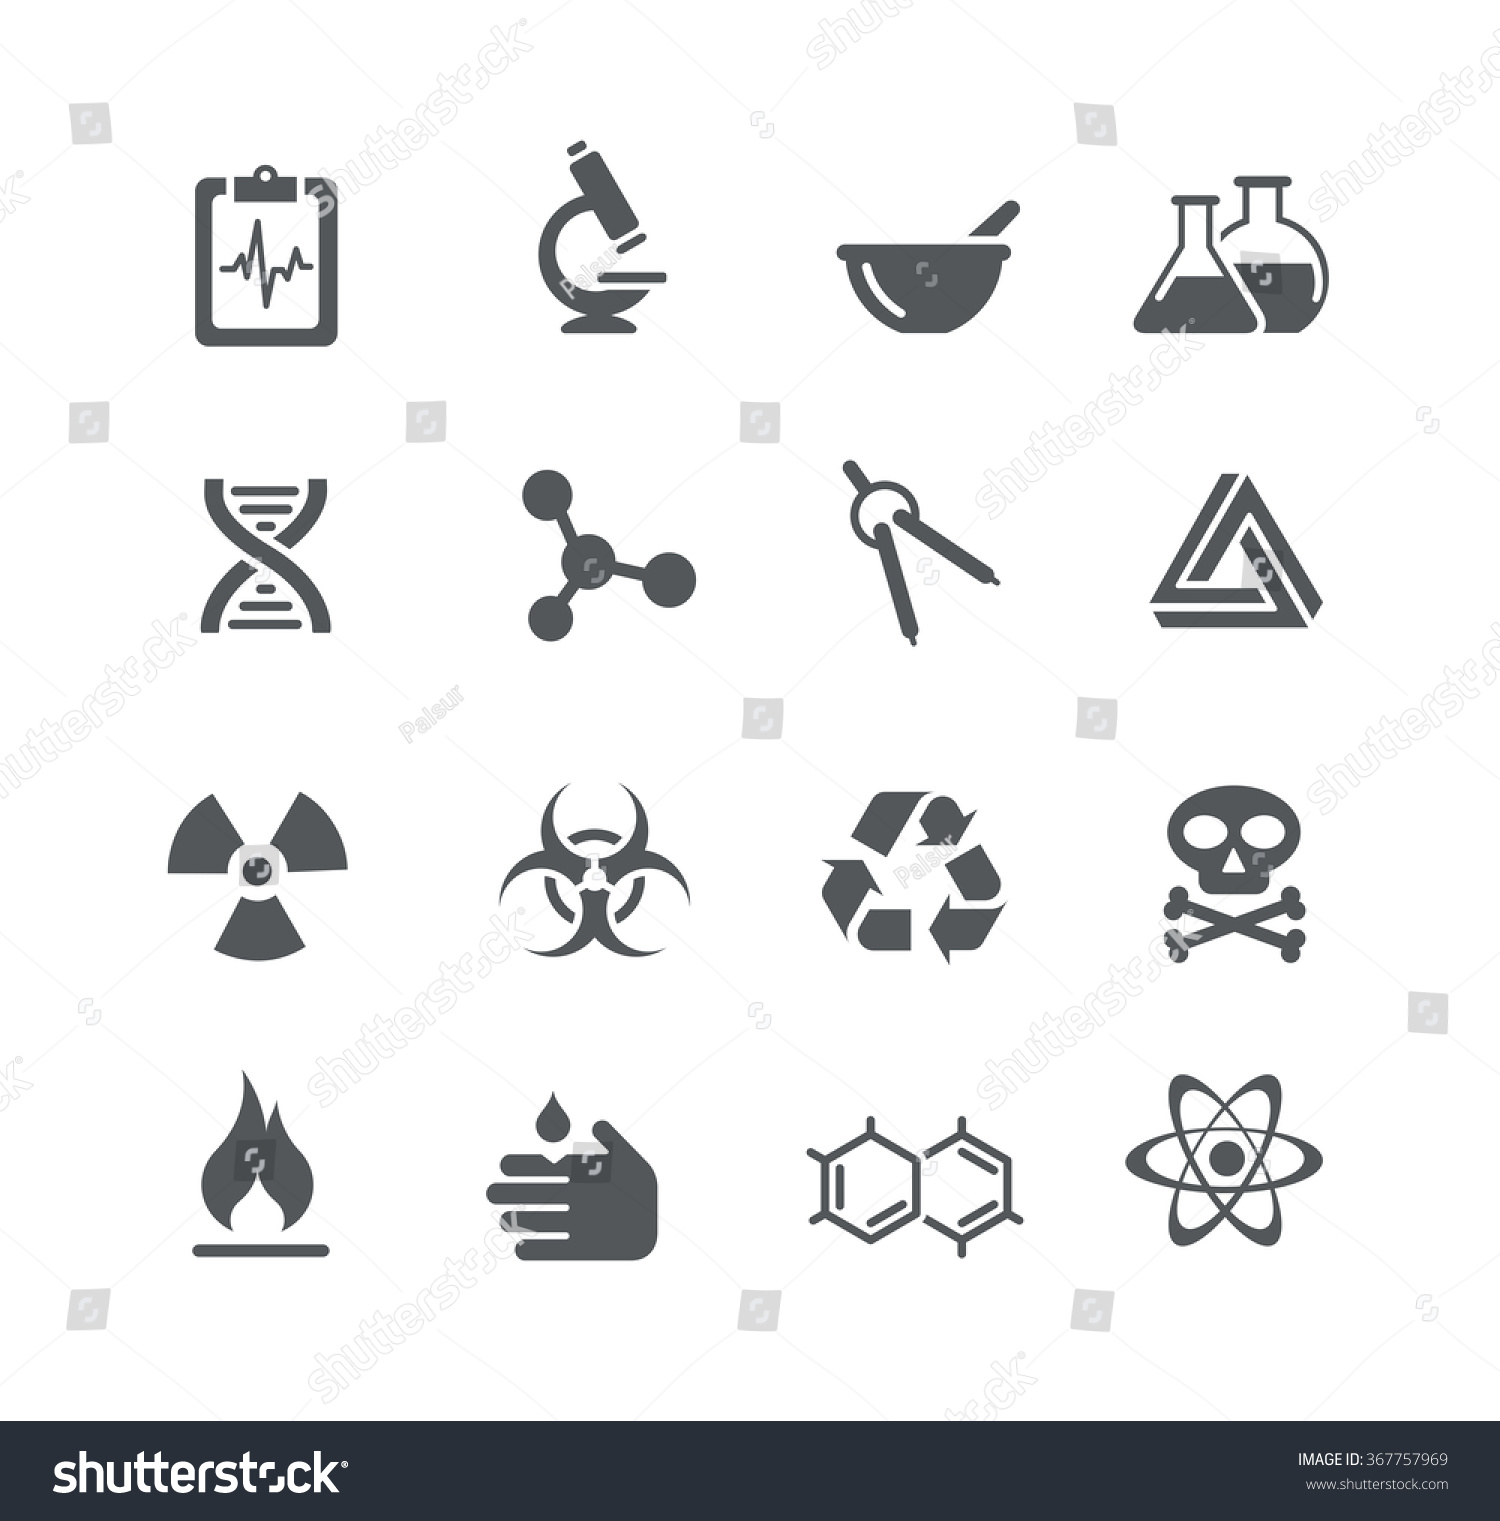 Science Signs Symbols Utility Series Stock Vector